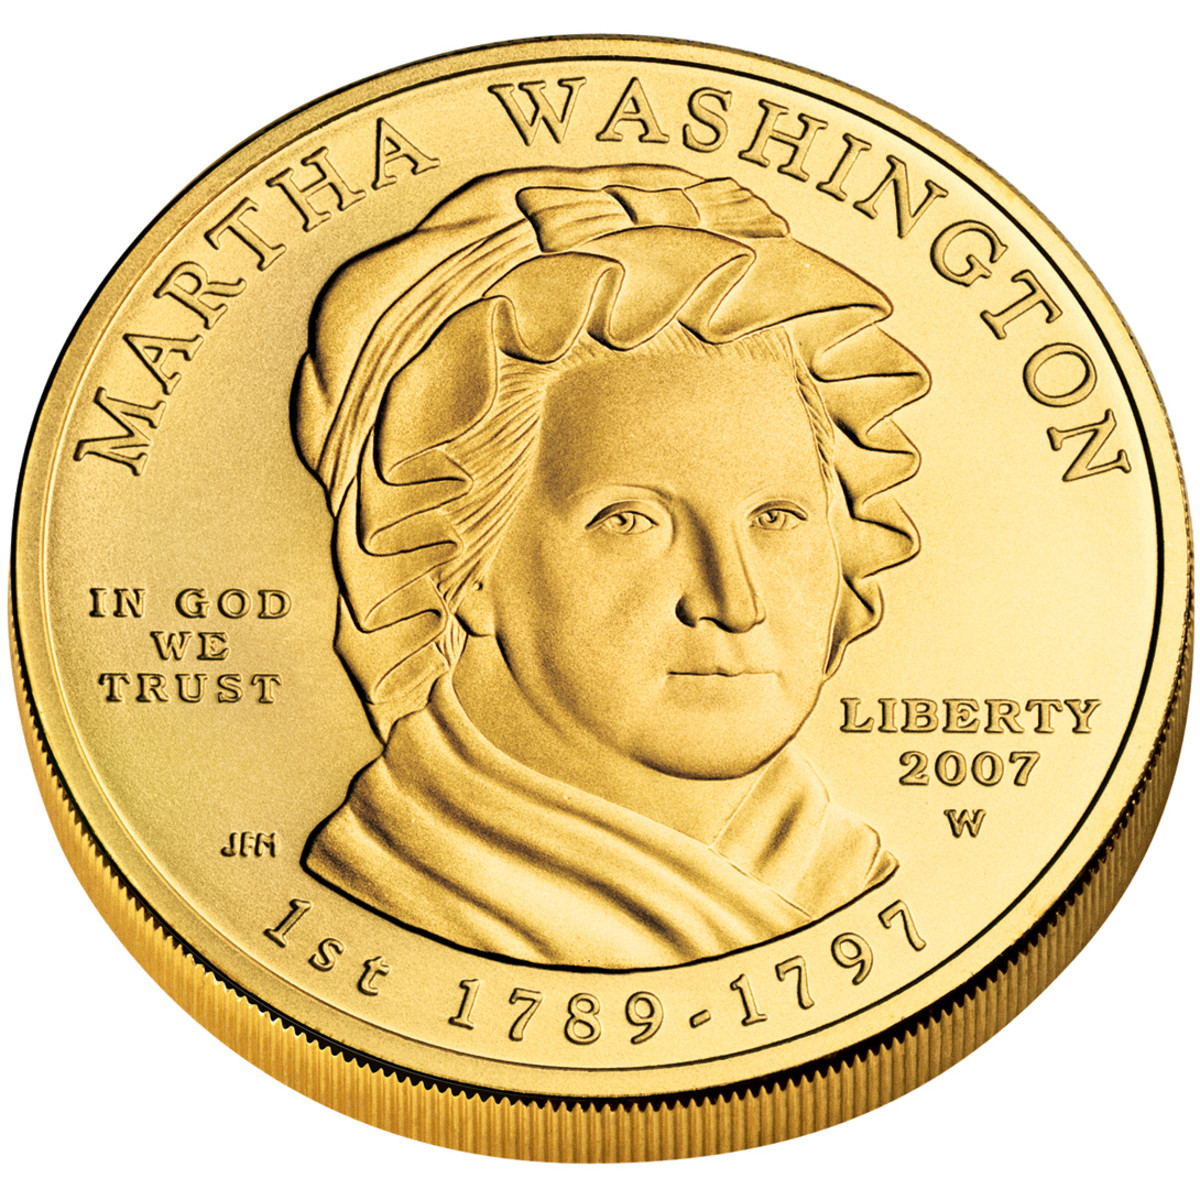 The United States First Spouse Program gold coin for Martha Washington.